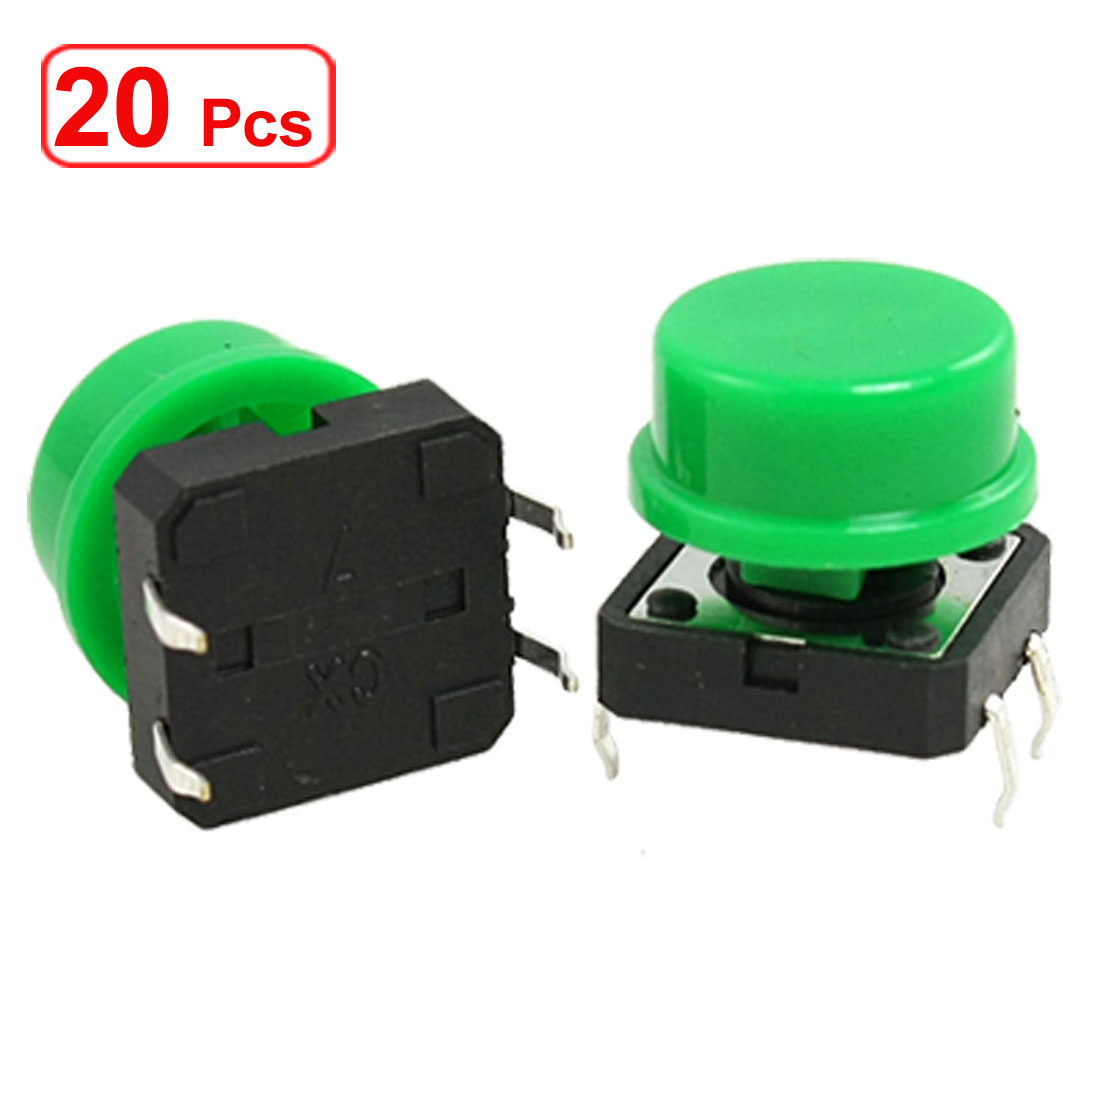 20 Pcs Momentary Tact Push Button Switch 12 x 12 x 12mm 4 Pin 4P DIP w Round Cap